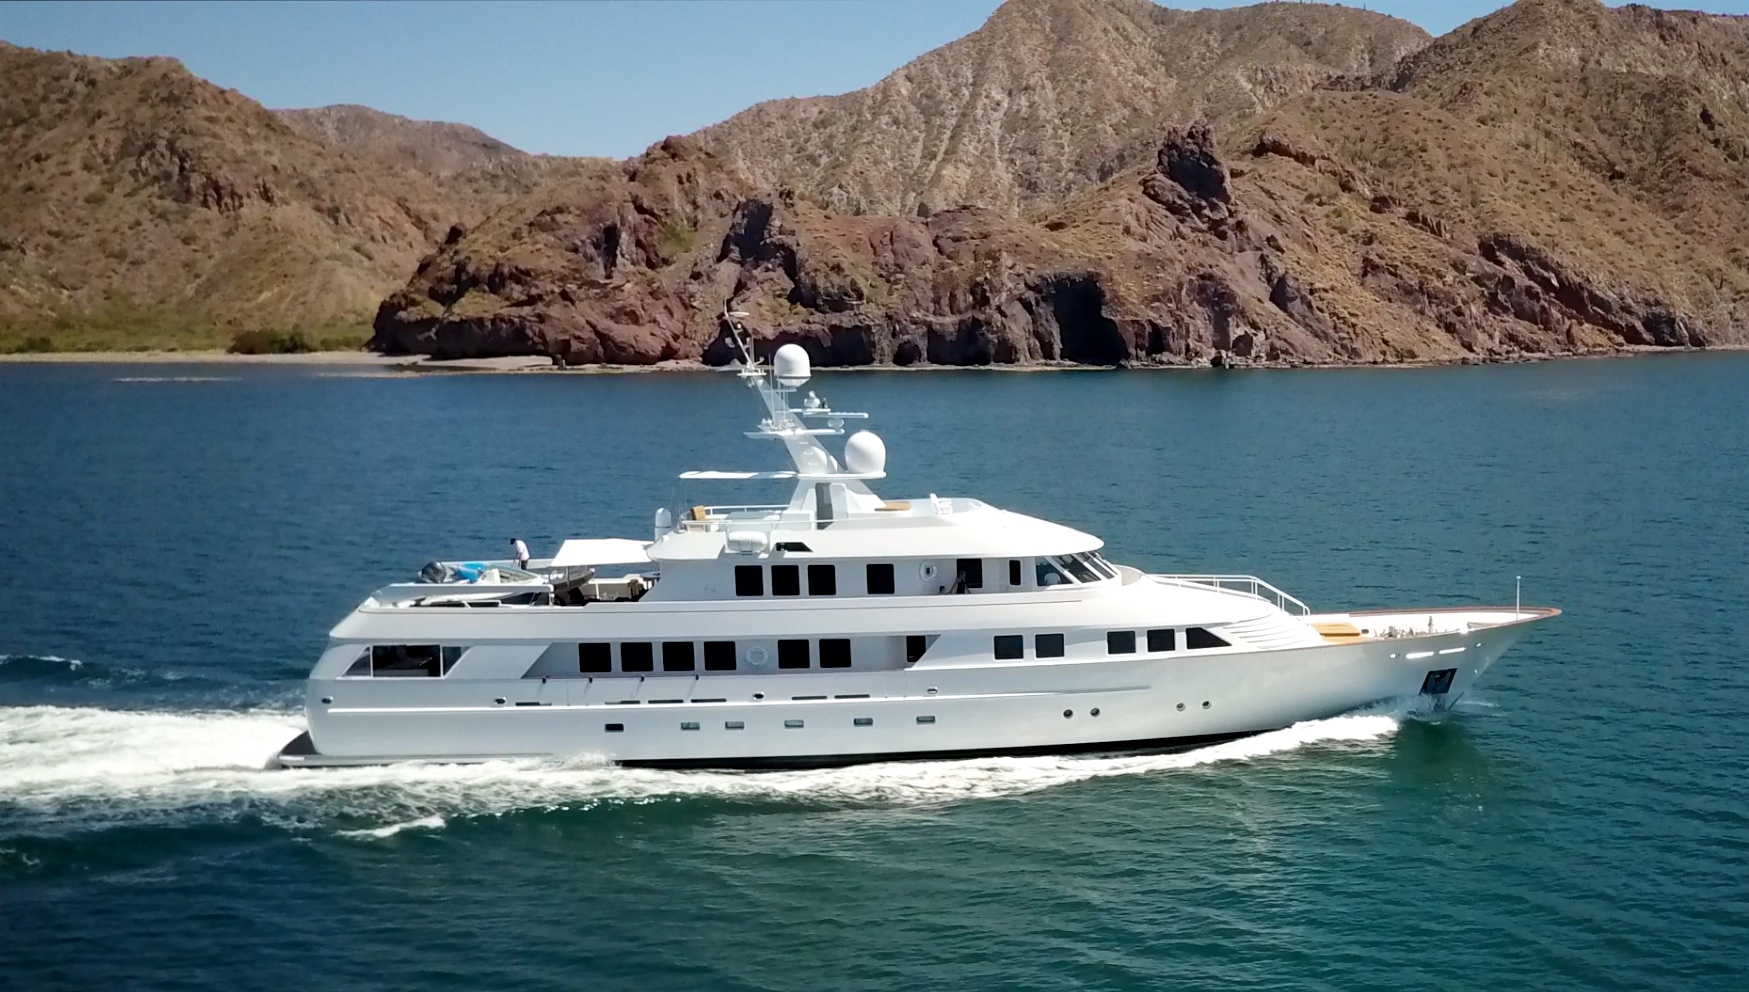 D'Natalin yacht for Sale